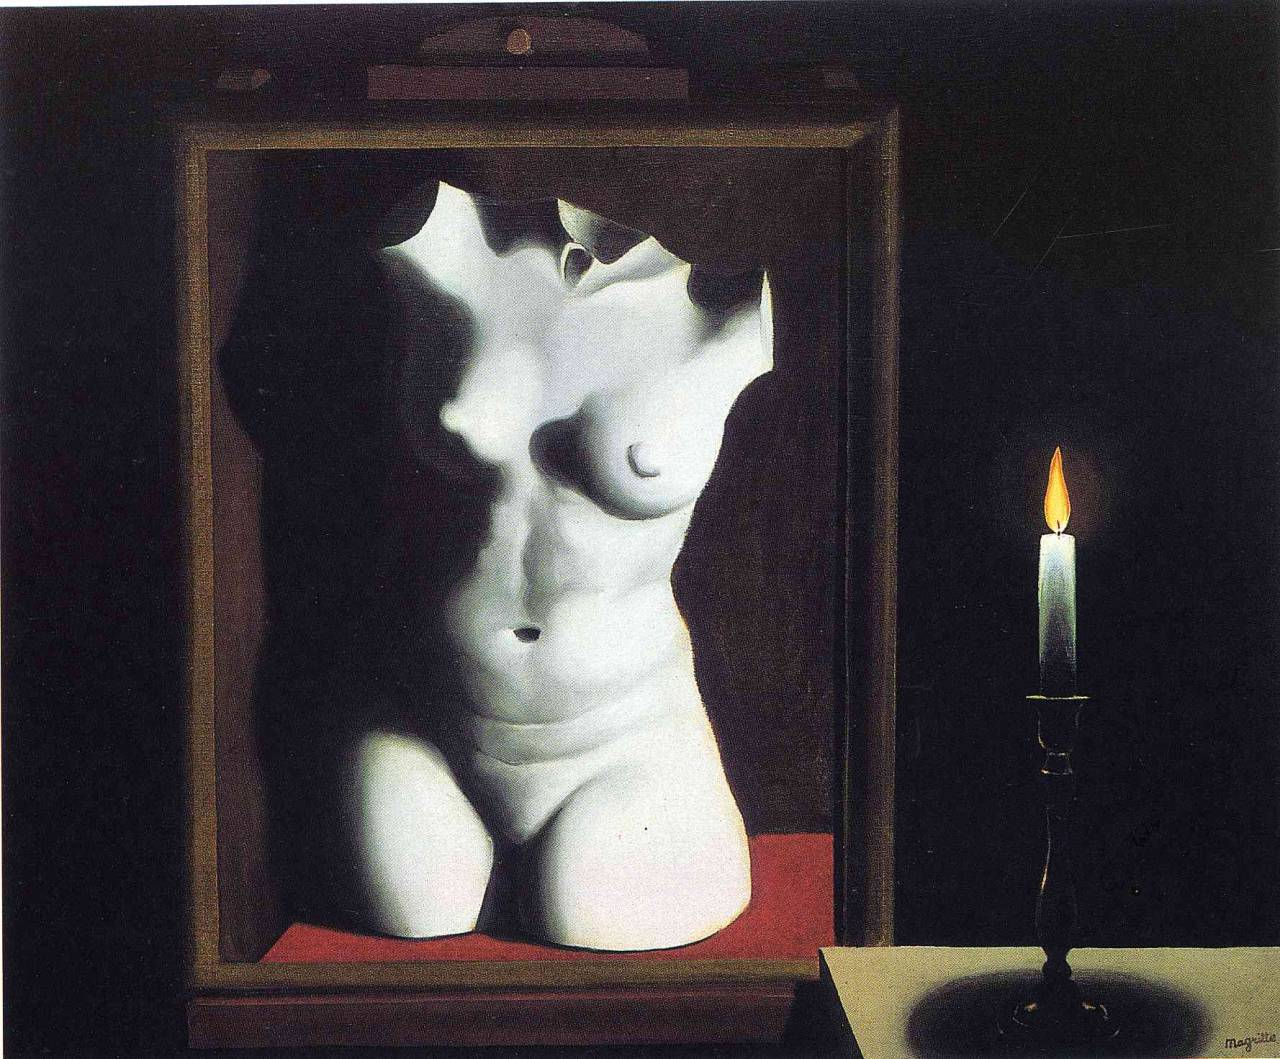 The light of the coincidence - René Magritte